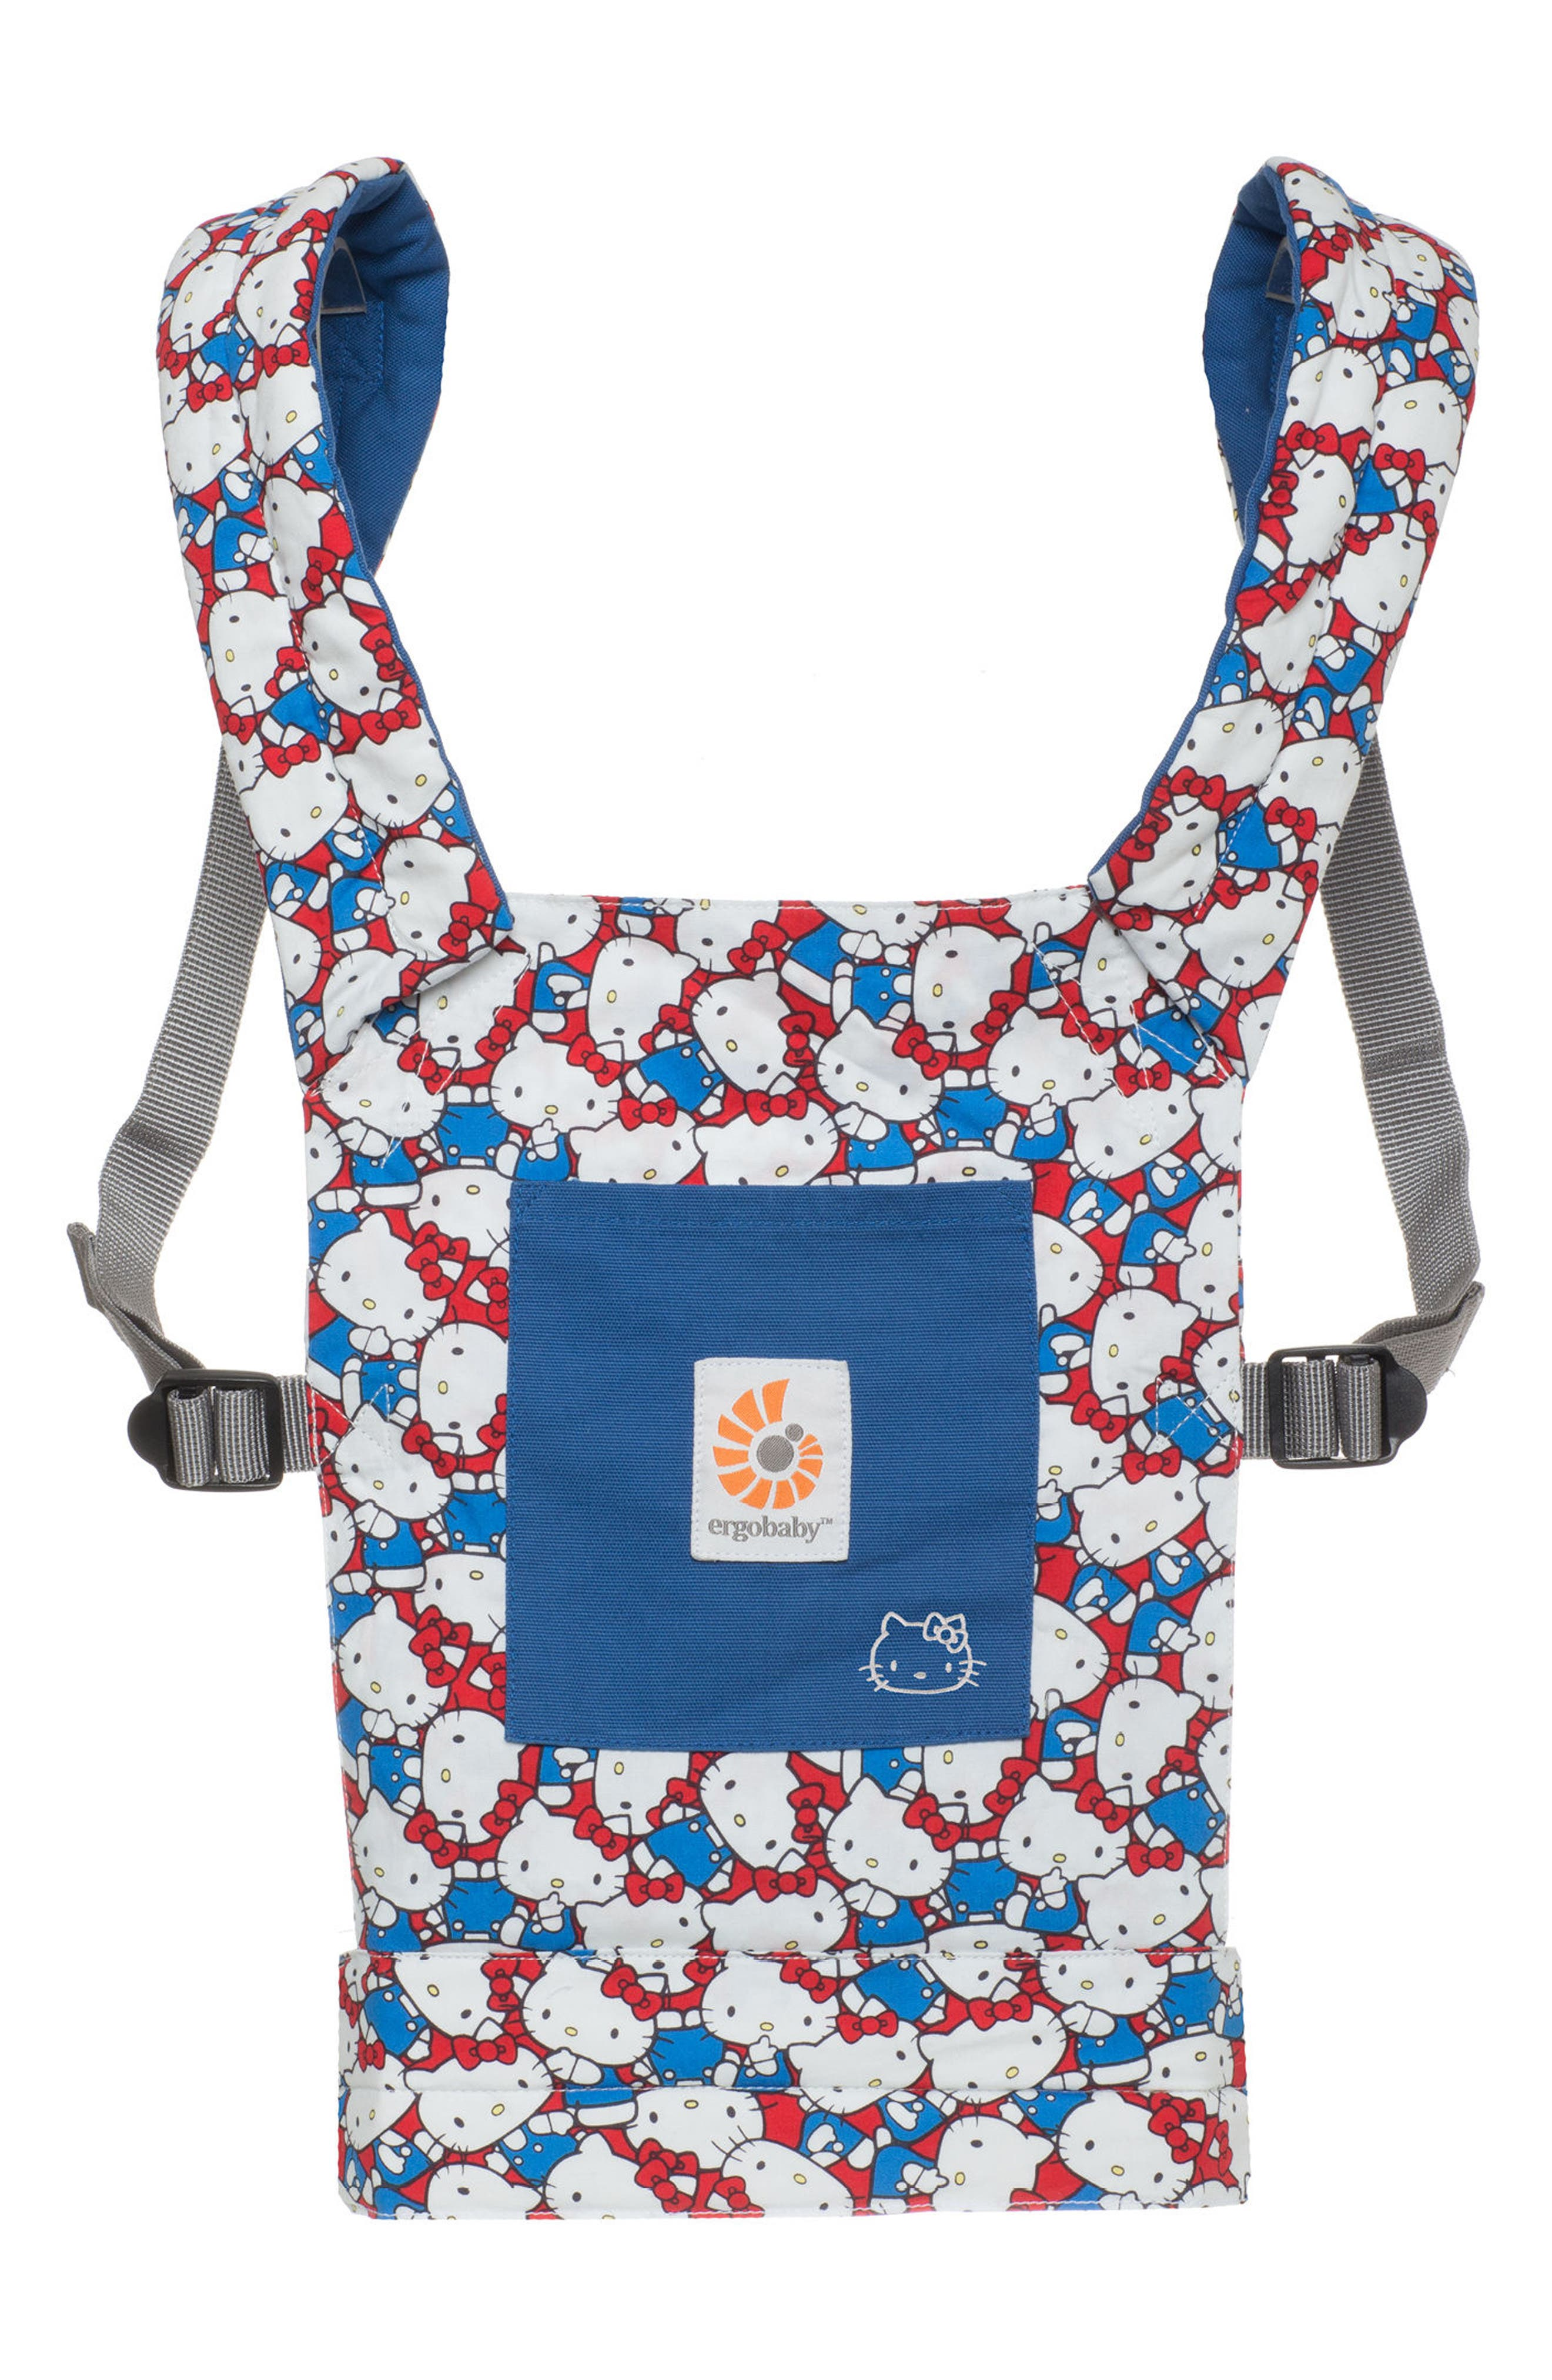 x Hello Kitty<sup>®</sup> Doll Carrier,                             Main thumbnail 1, color,                             400